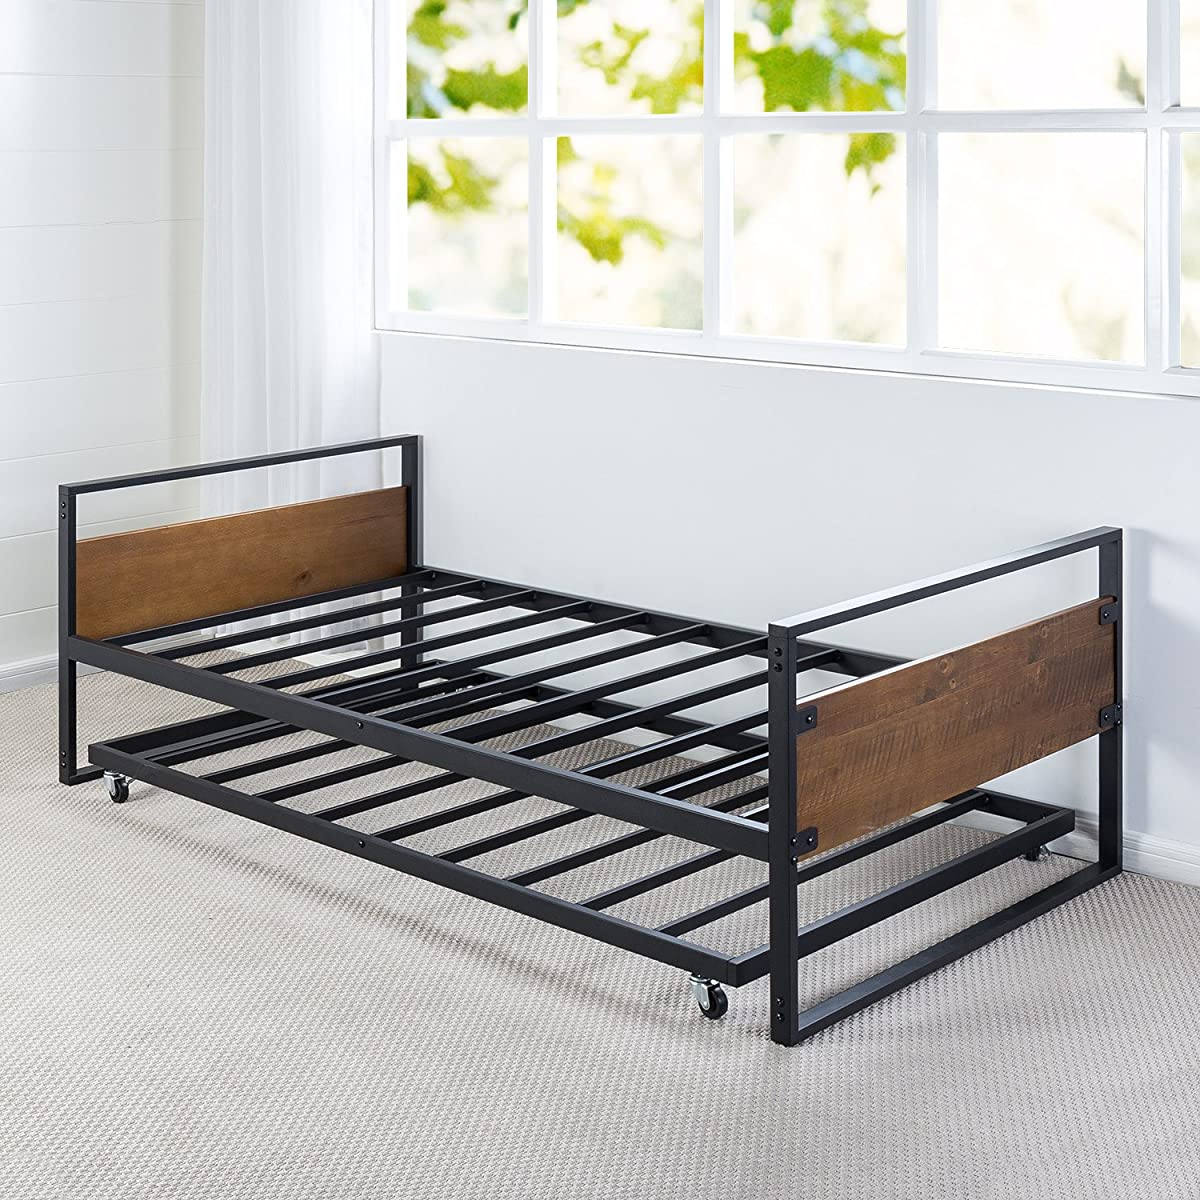 Zinus Ironline Twin Daybed and Trundle Frame Set / Premium Steel Slat Support / Daybed and Roll Out Trundle Accommodate Twin Size Mattresses Sold Separately